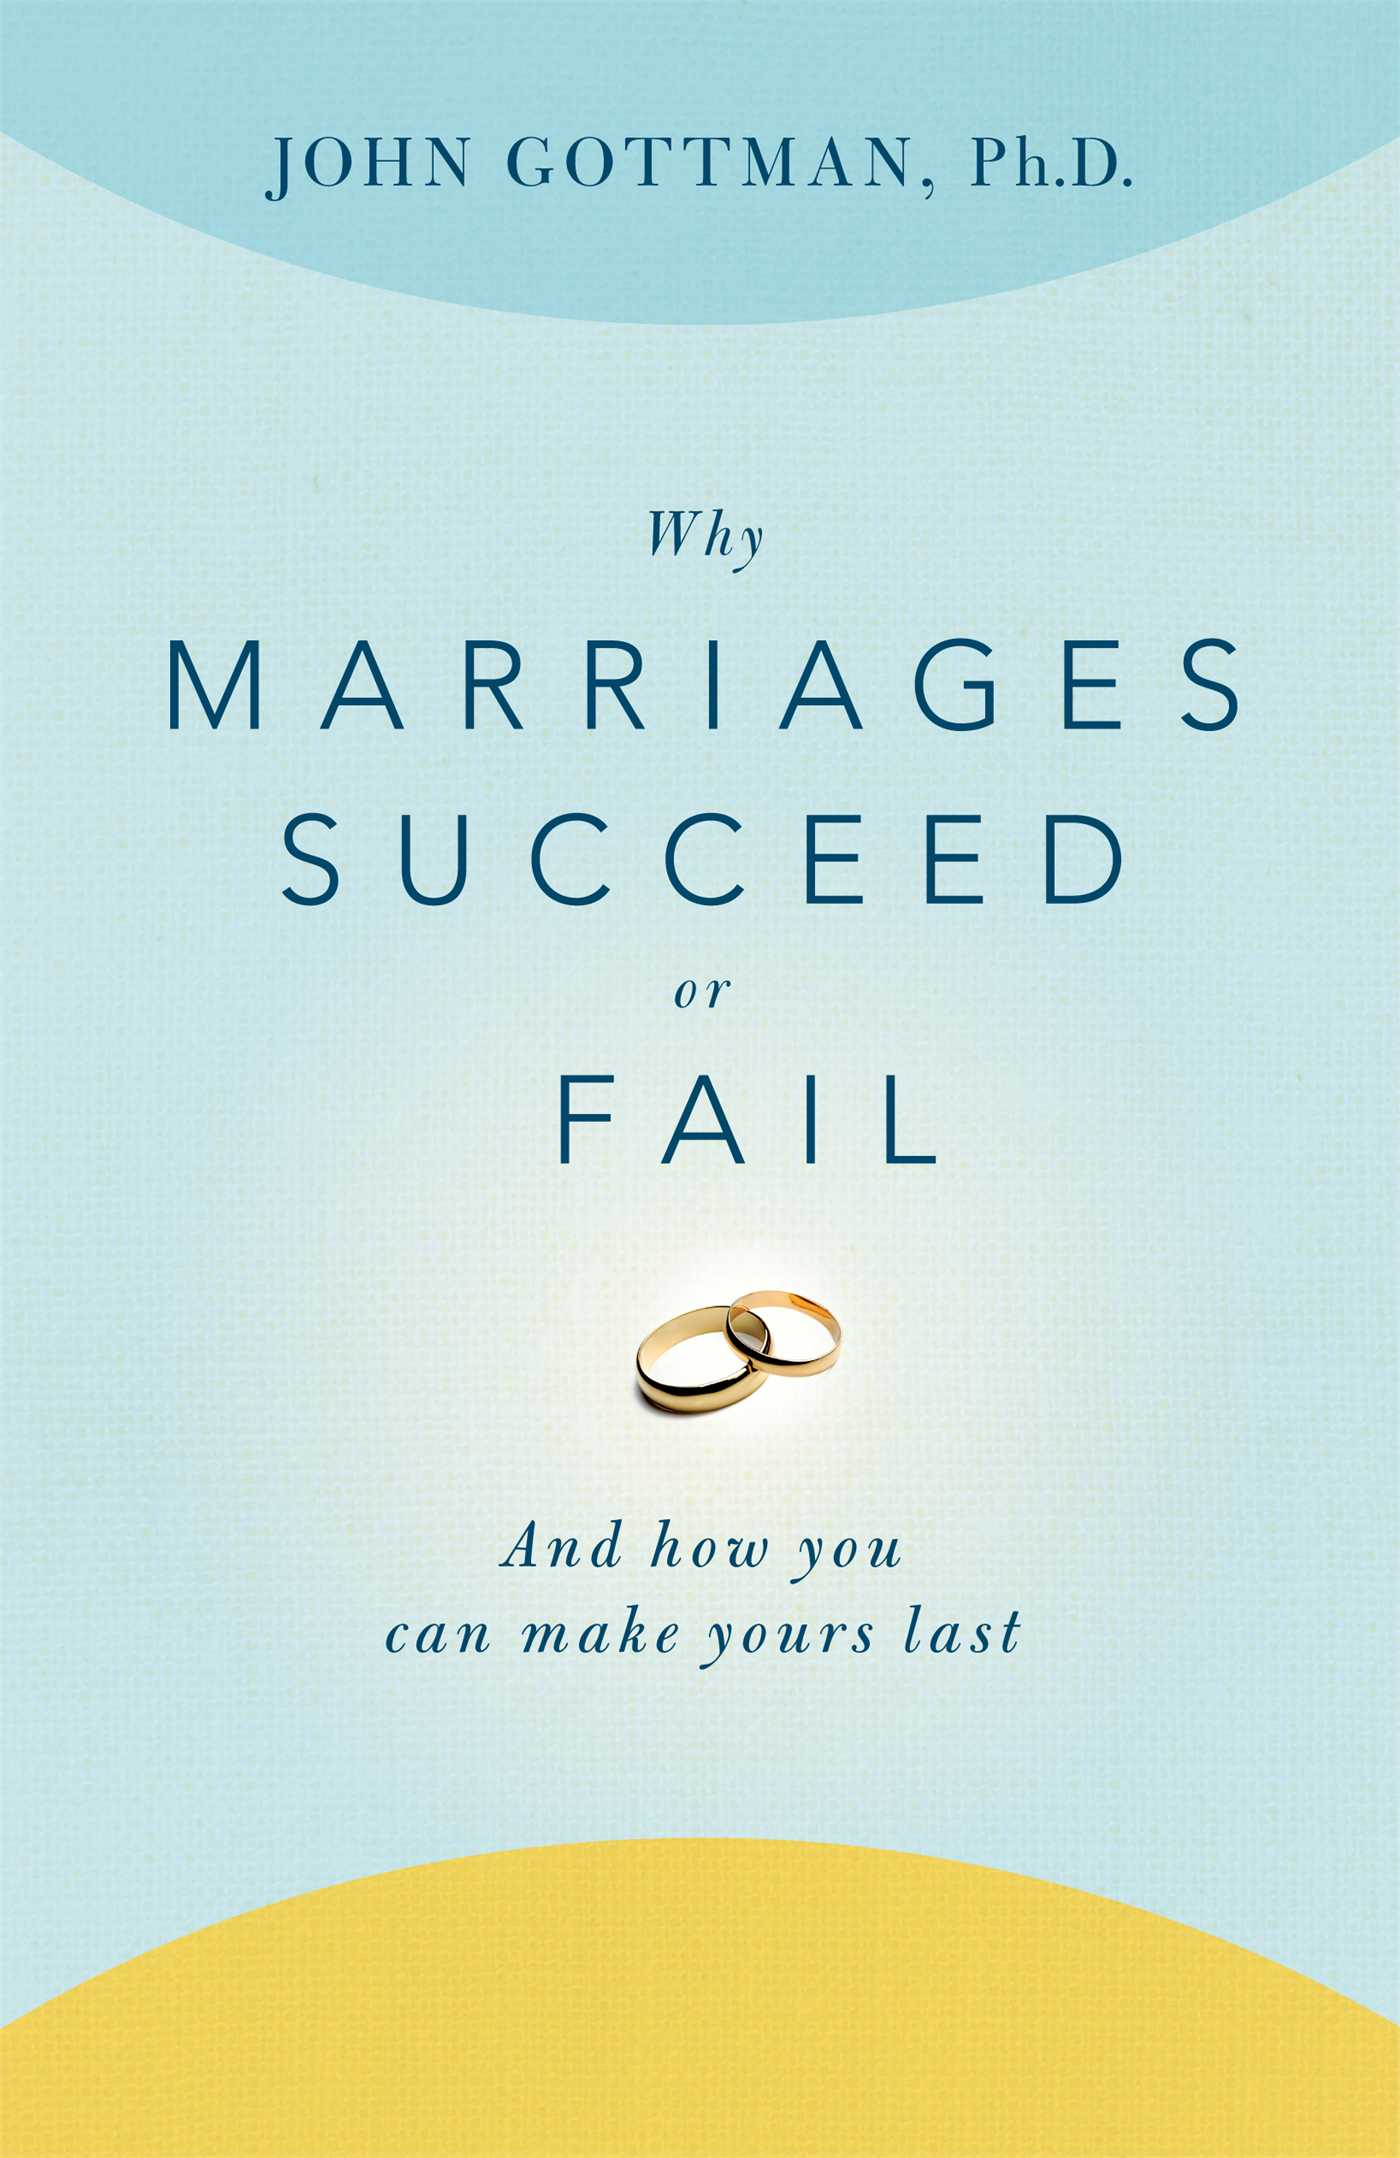 why marriages succeed or fail and how you can make yours last